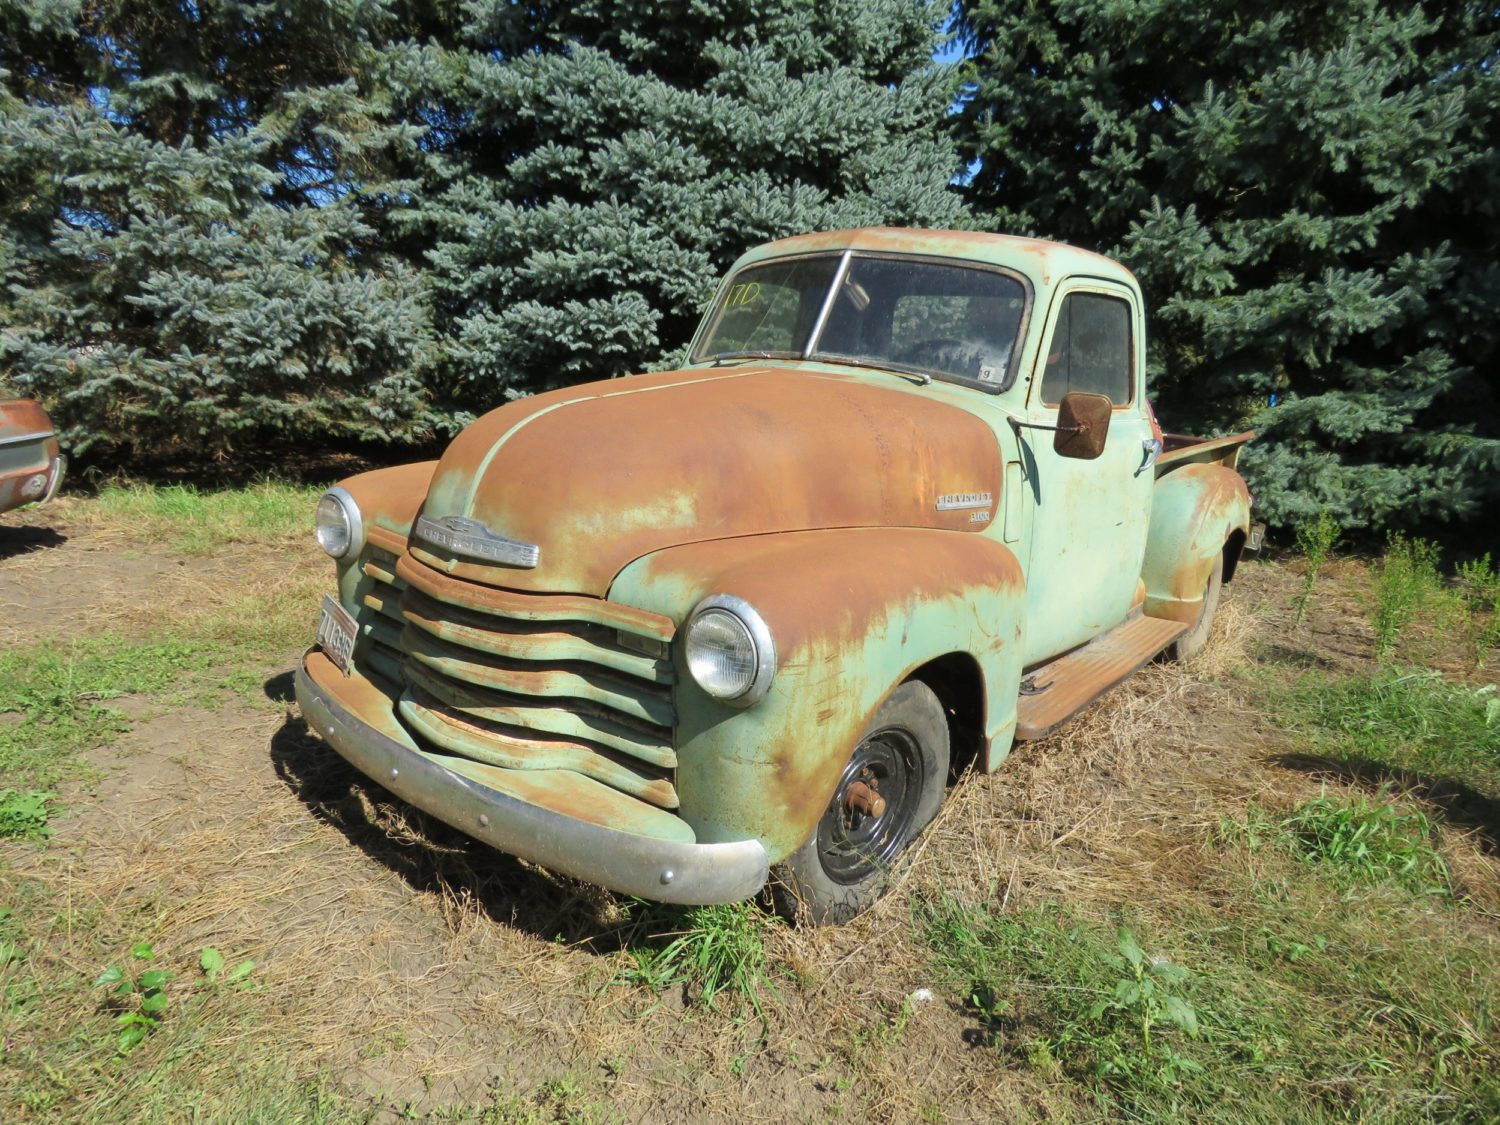 Collector Cars and Parts-Doug Wilson Collection - image 5